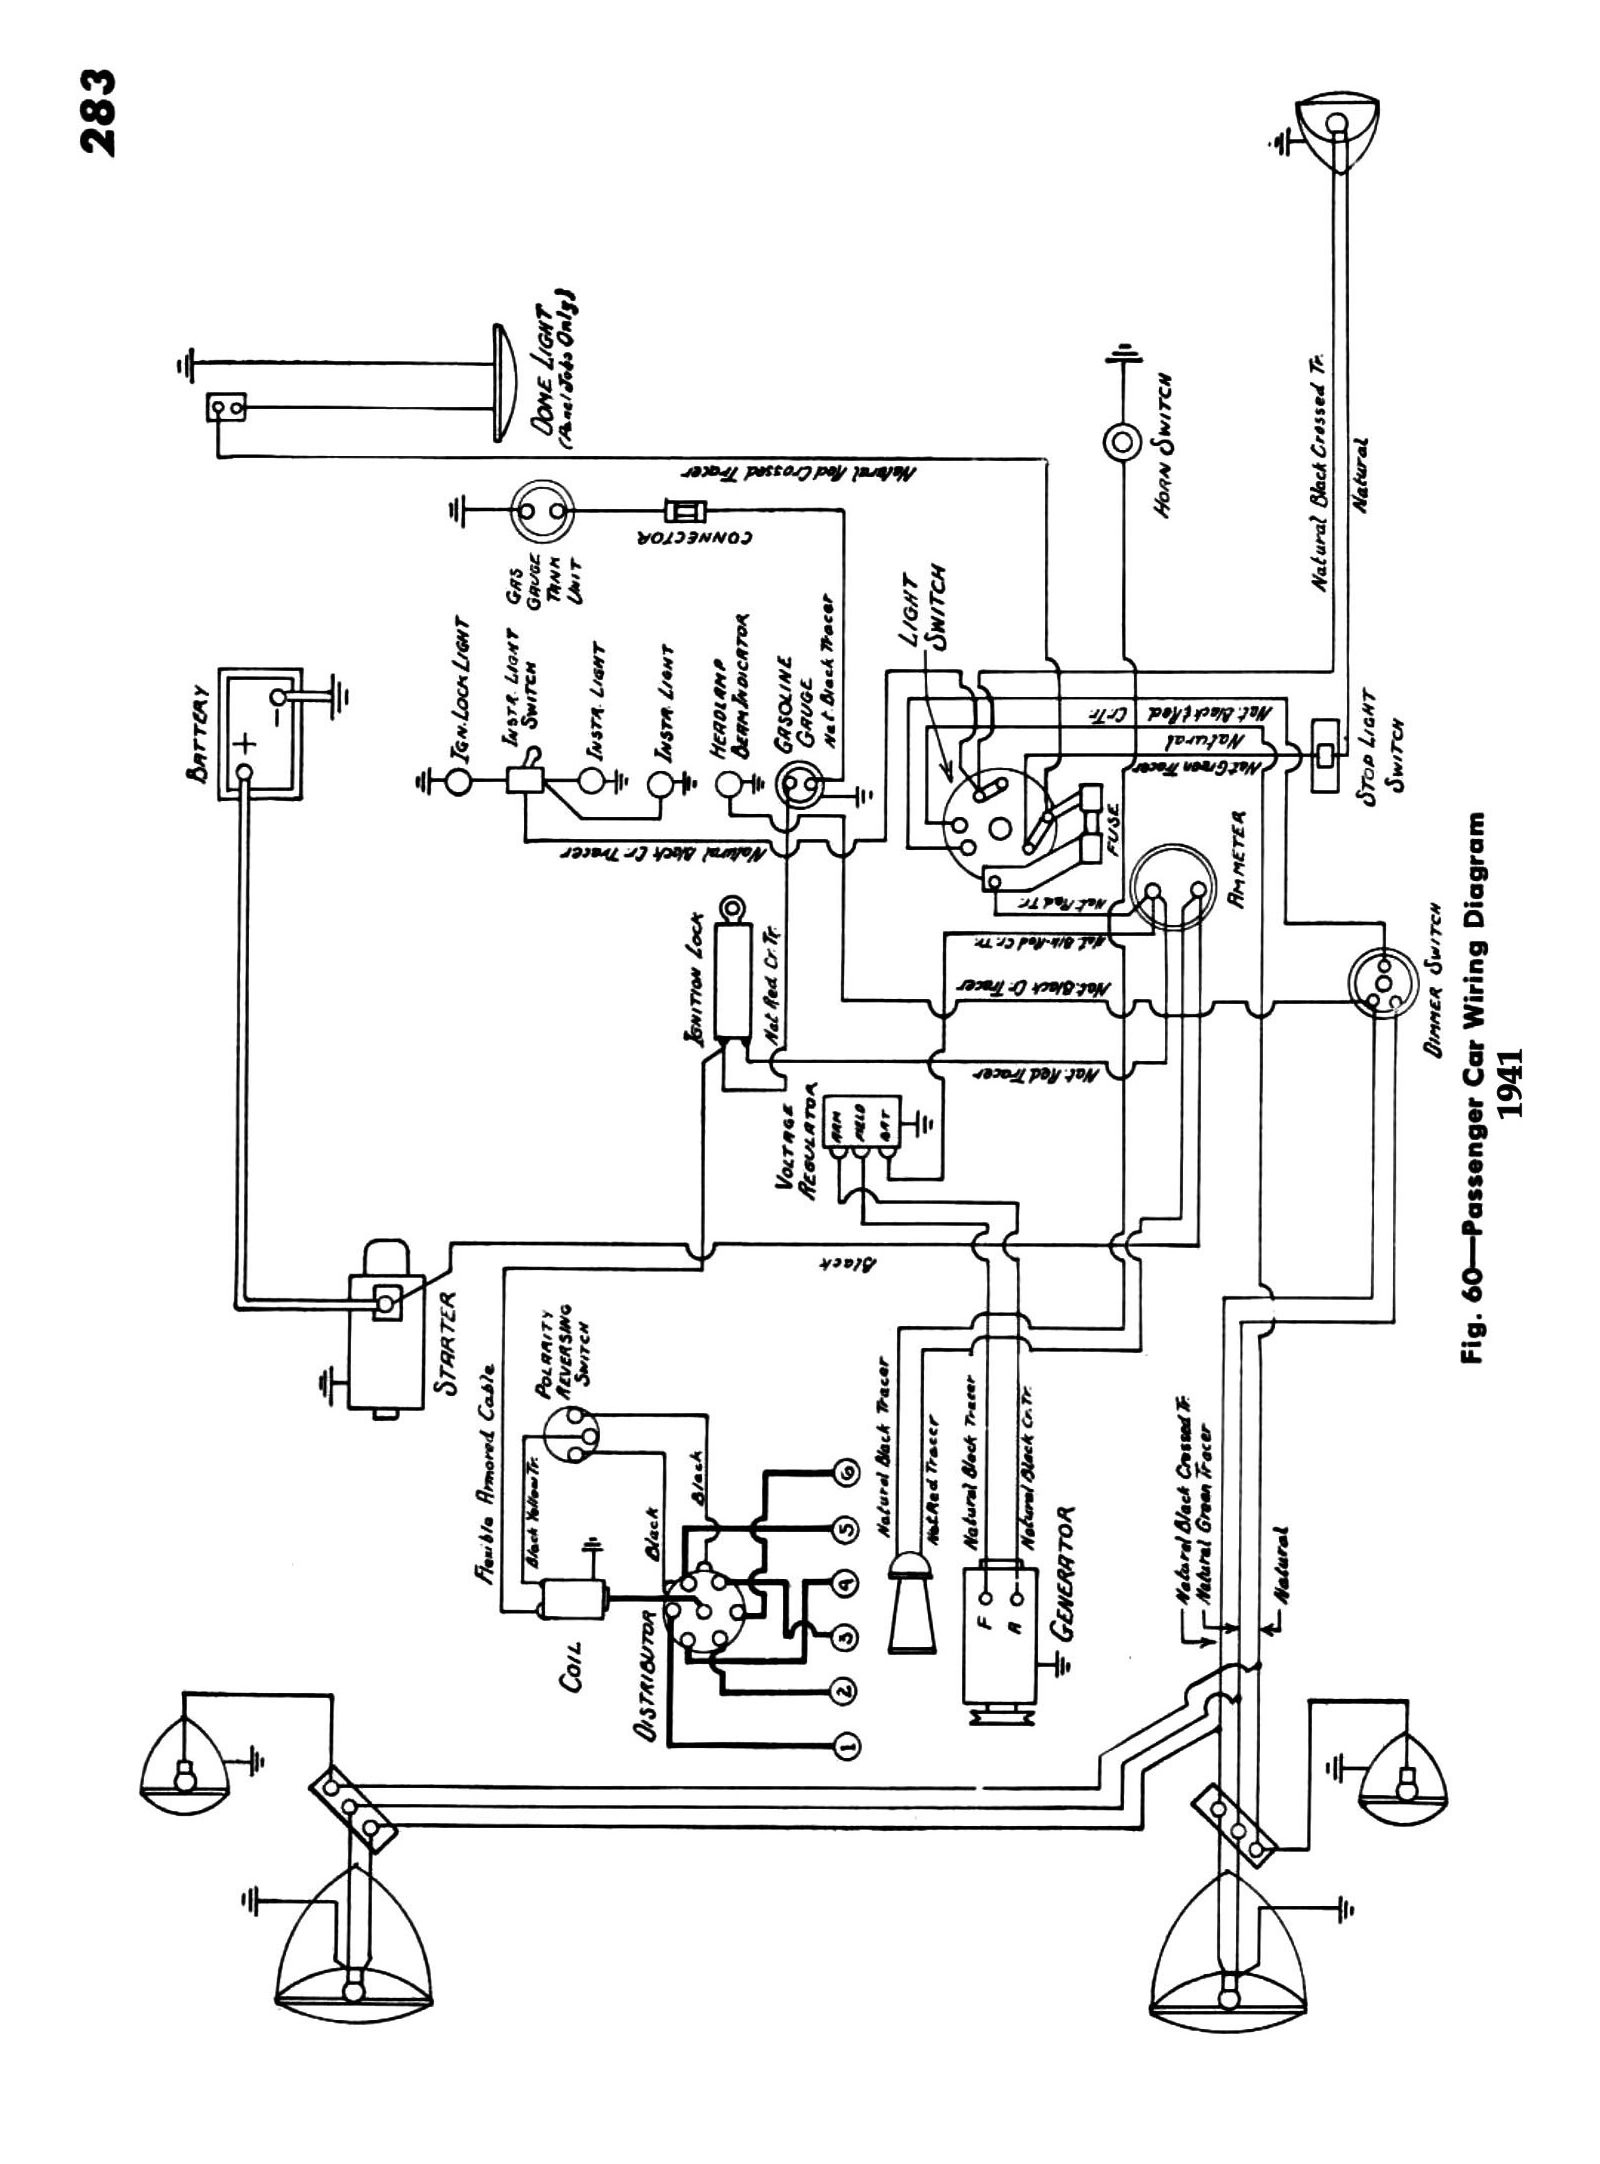 2005 chevy aveo wire diagram